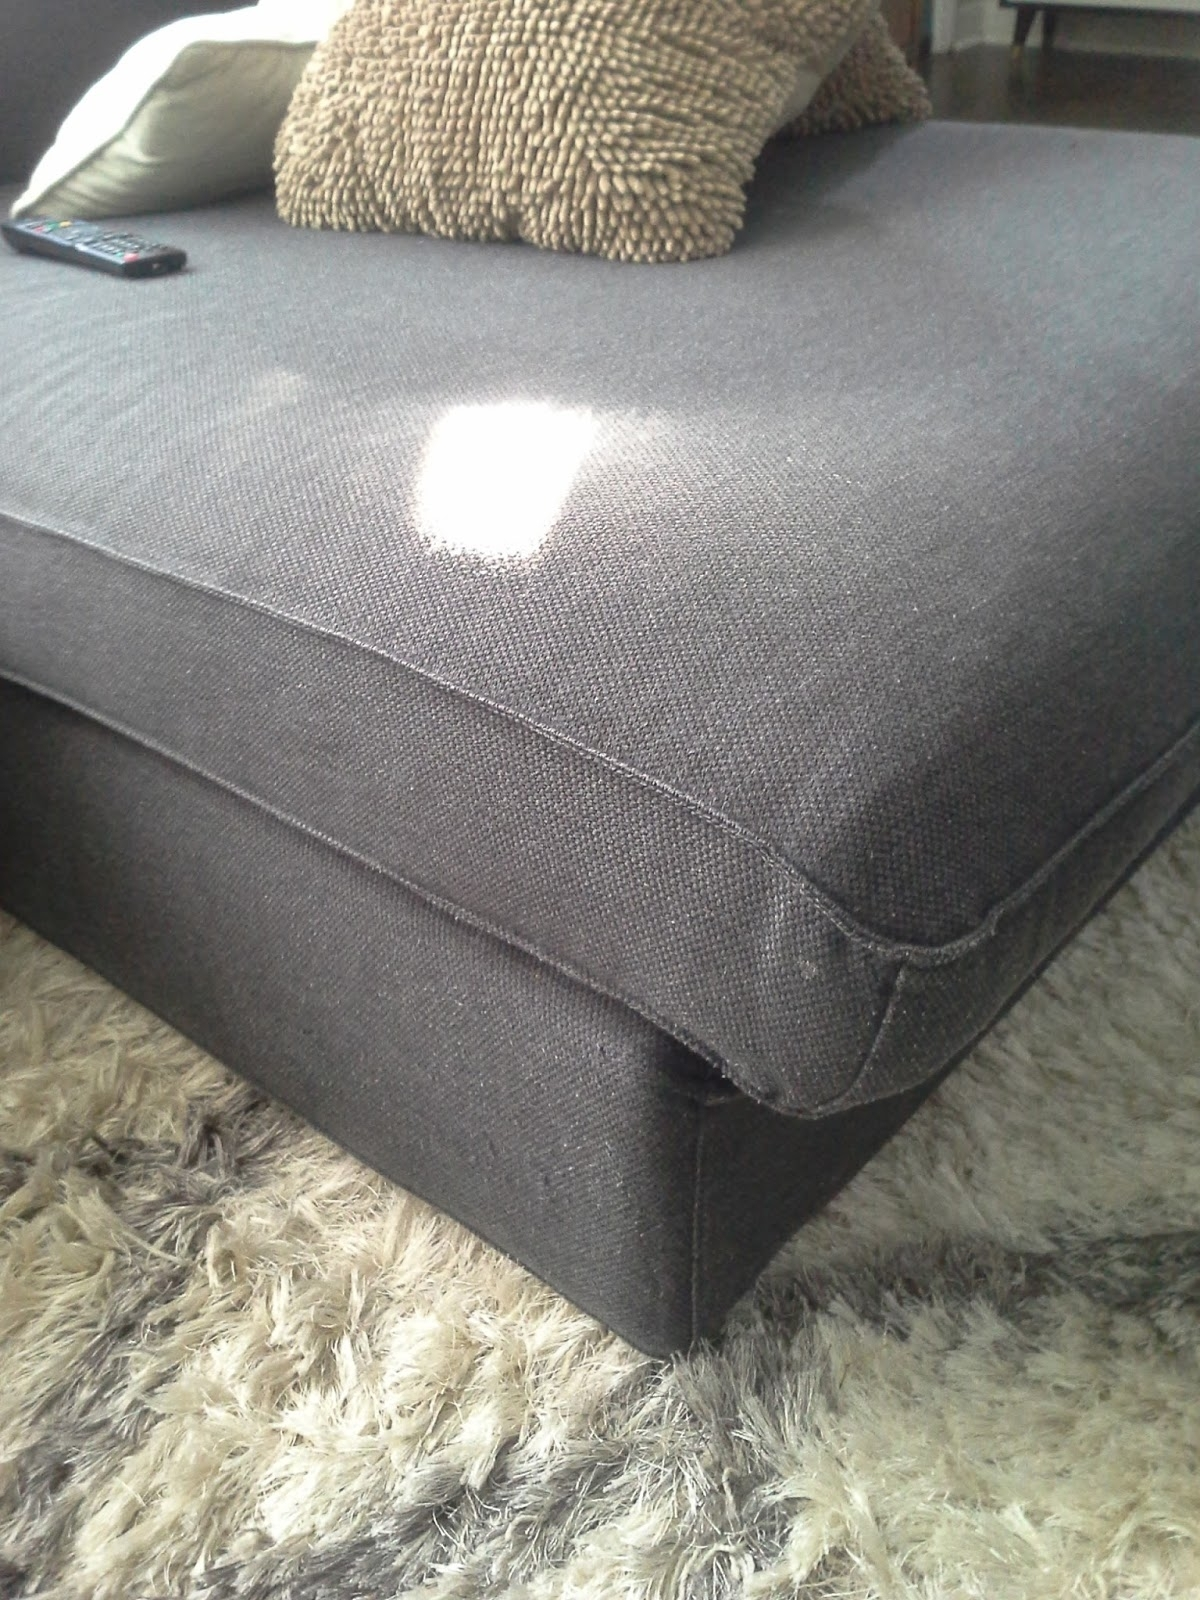 Lilly's Home Designs: Ikea Kivik Review Pertaining To Most Recent Kivik Chaises (View 10 of 15)